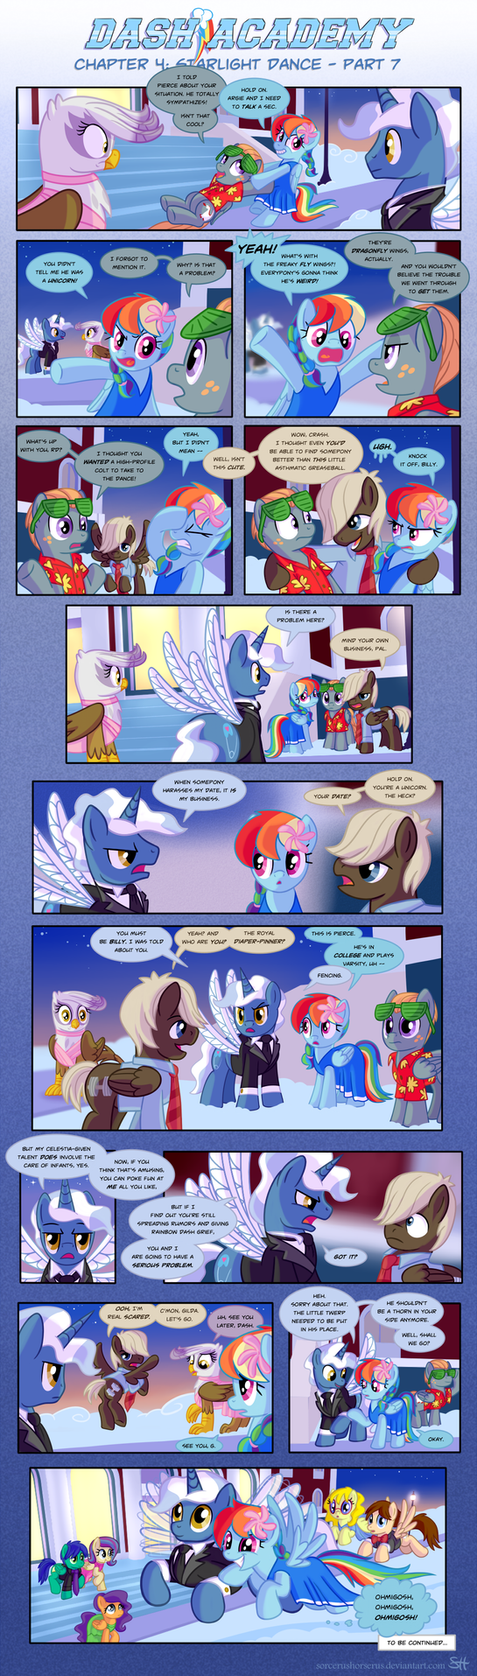 Dash Academy 4- Starlight Dance 7 by SorcerusHorserus